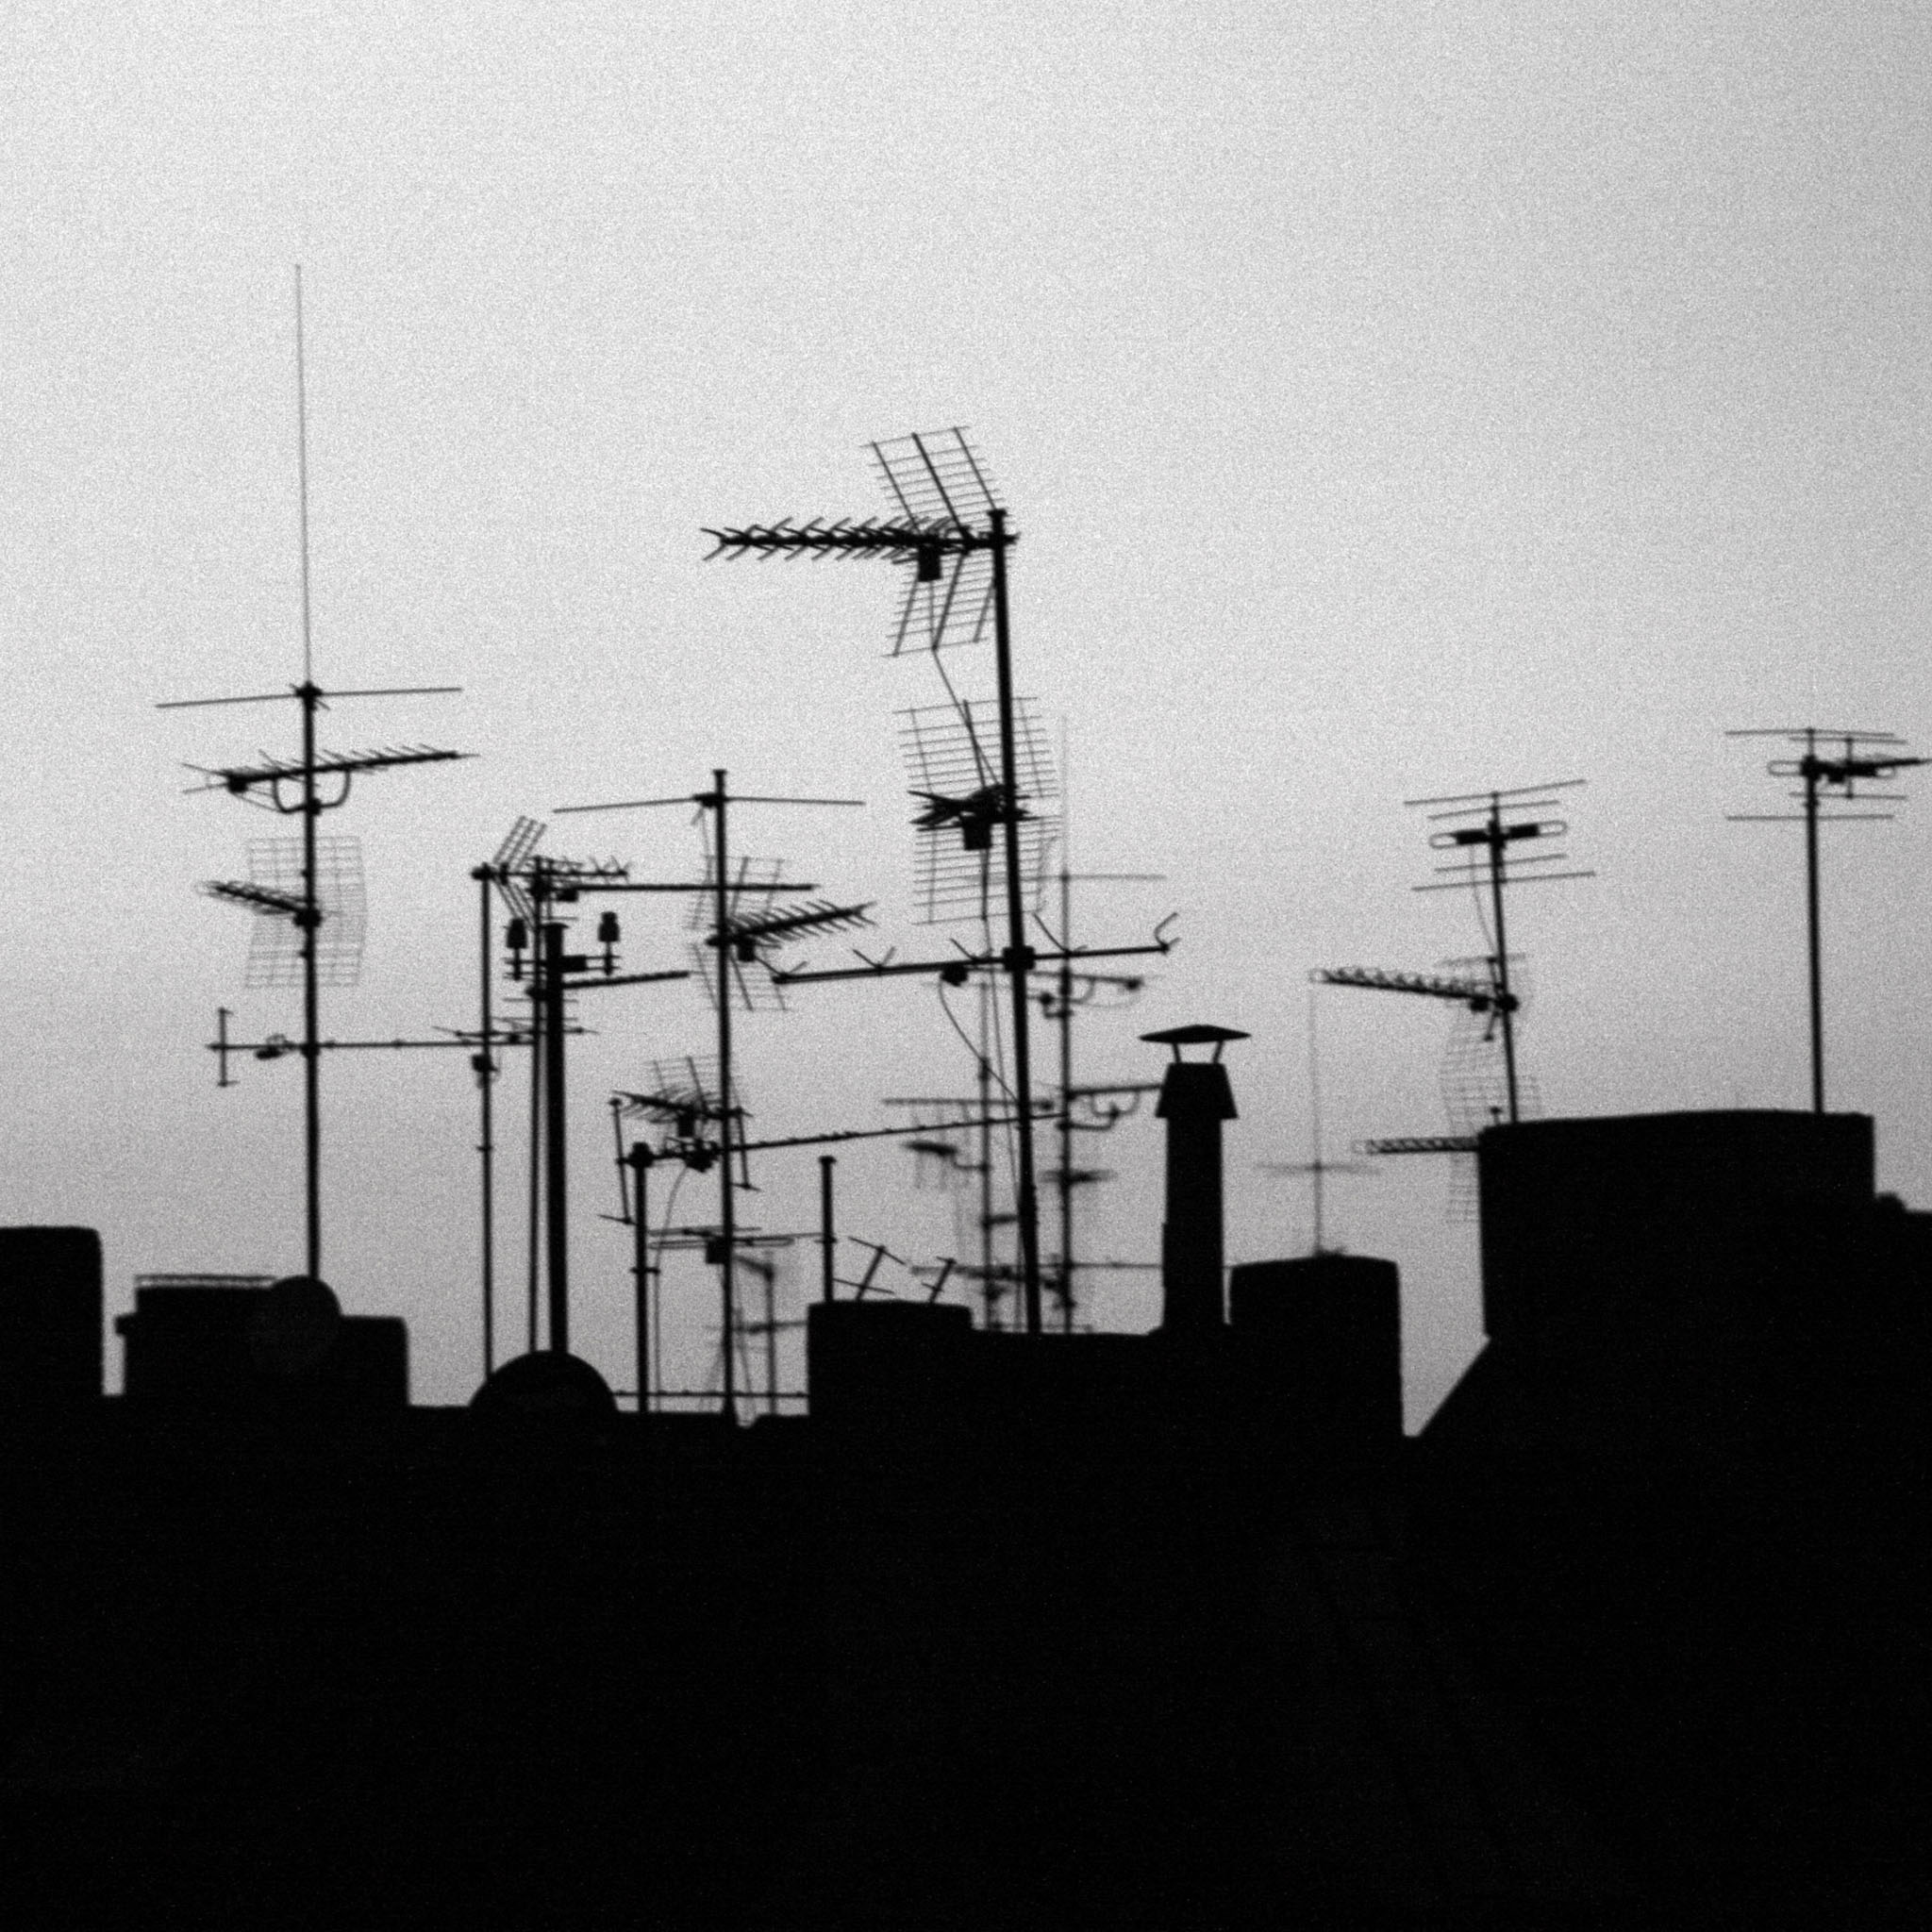 marfis75 - antennas ipad wallpaper